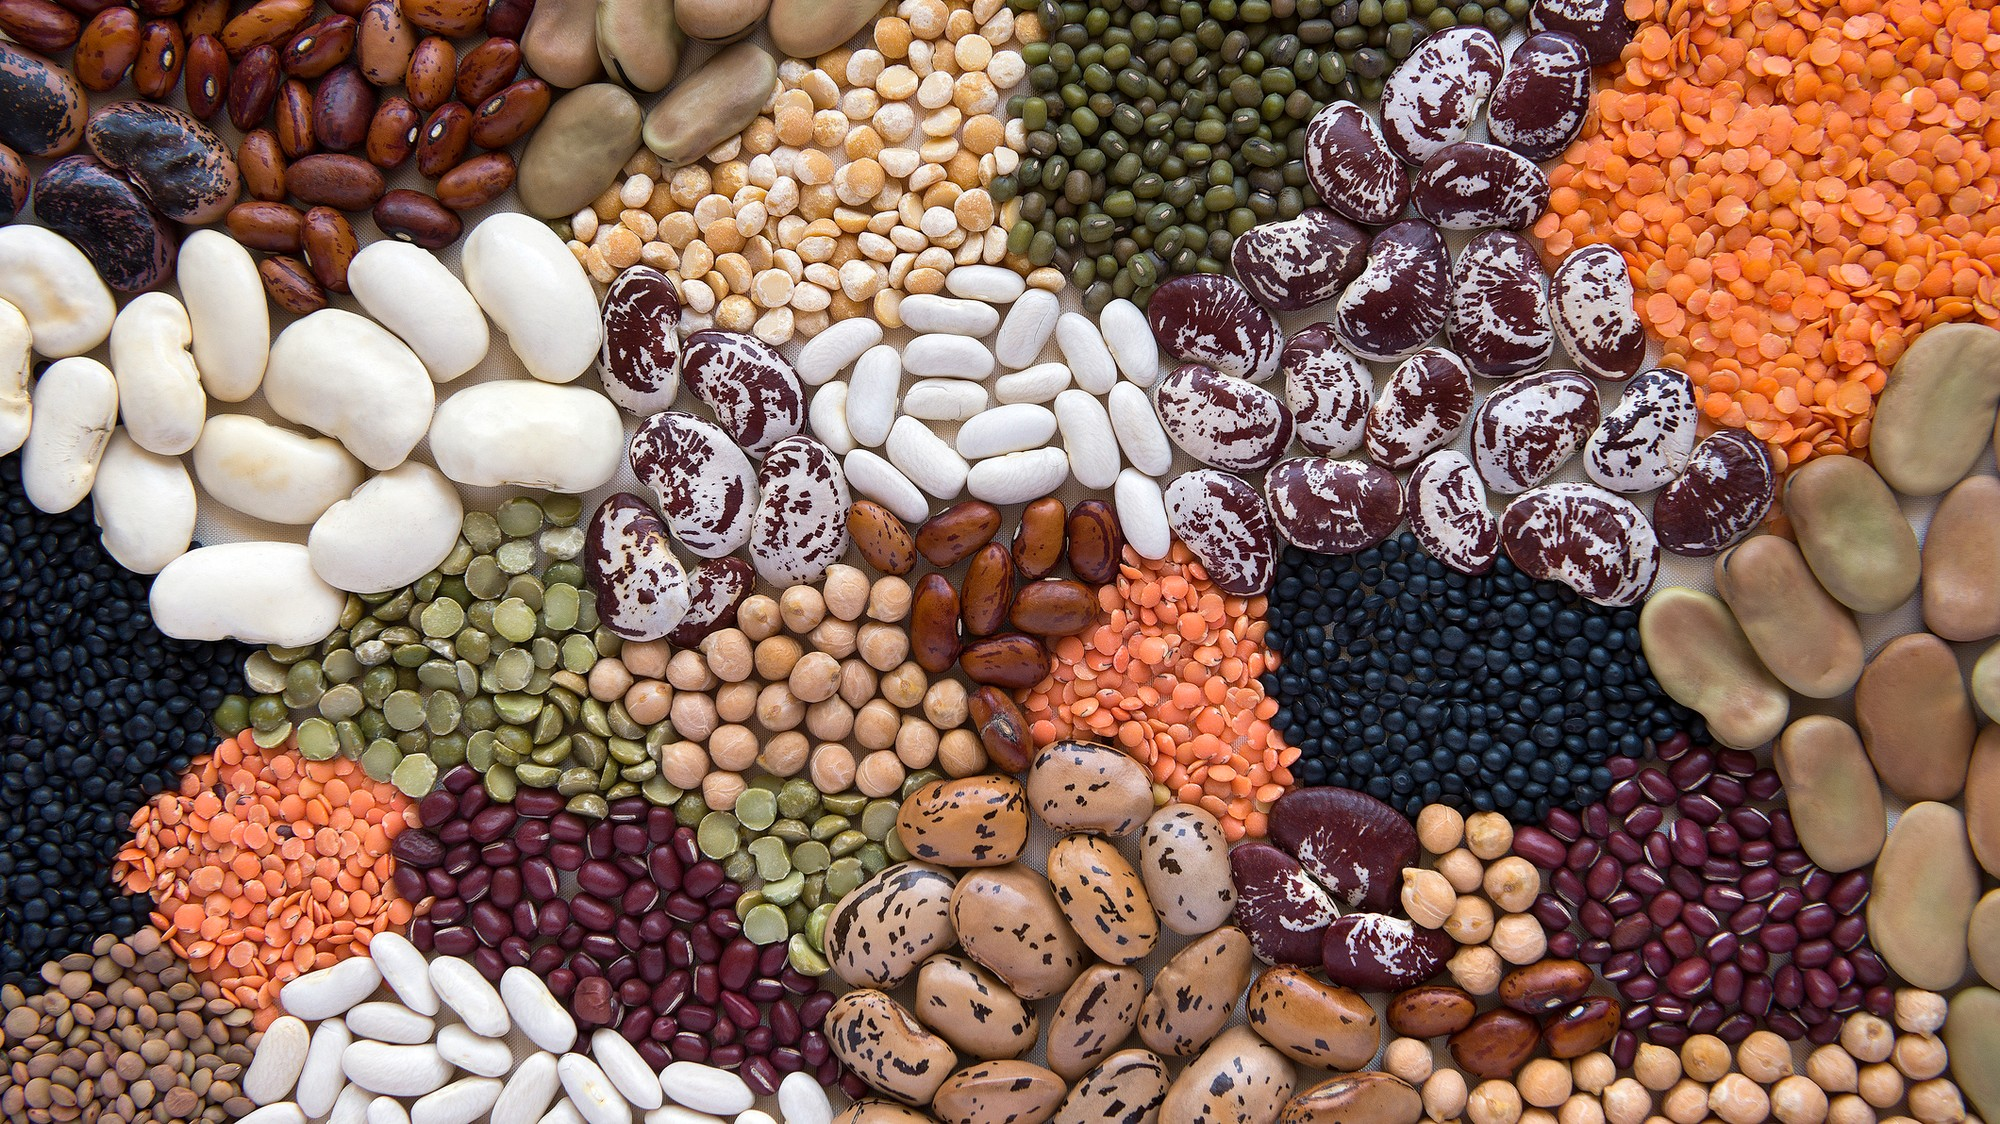 What Are Lectins and Are They Bad for Me? - VICE